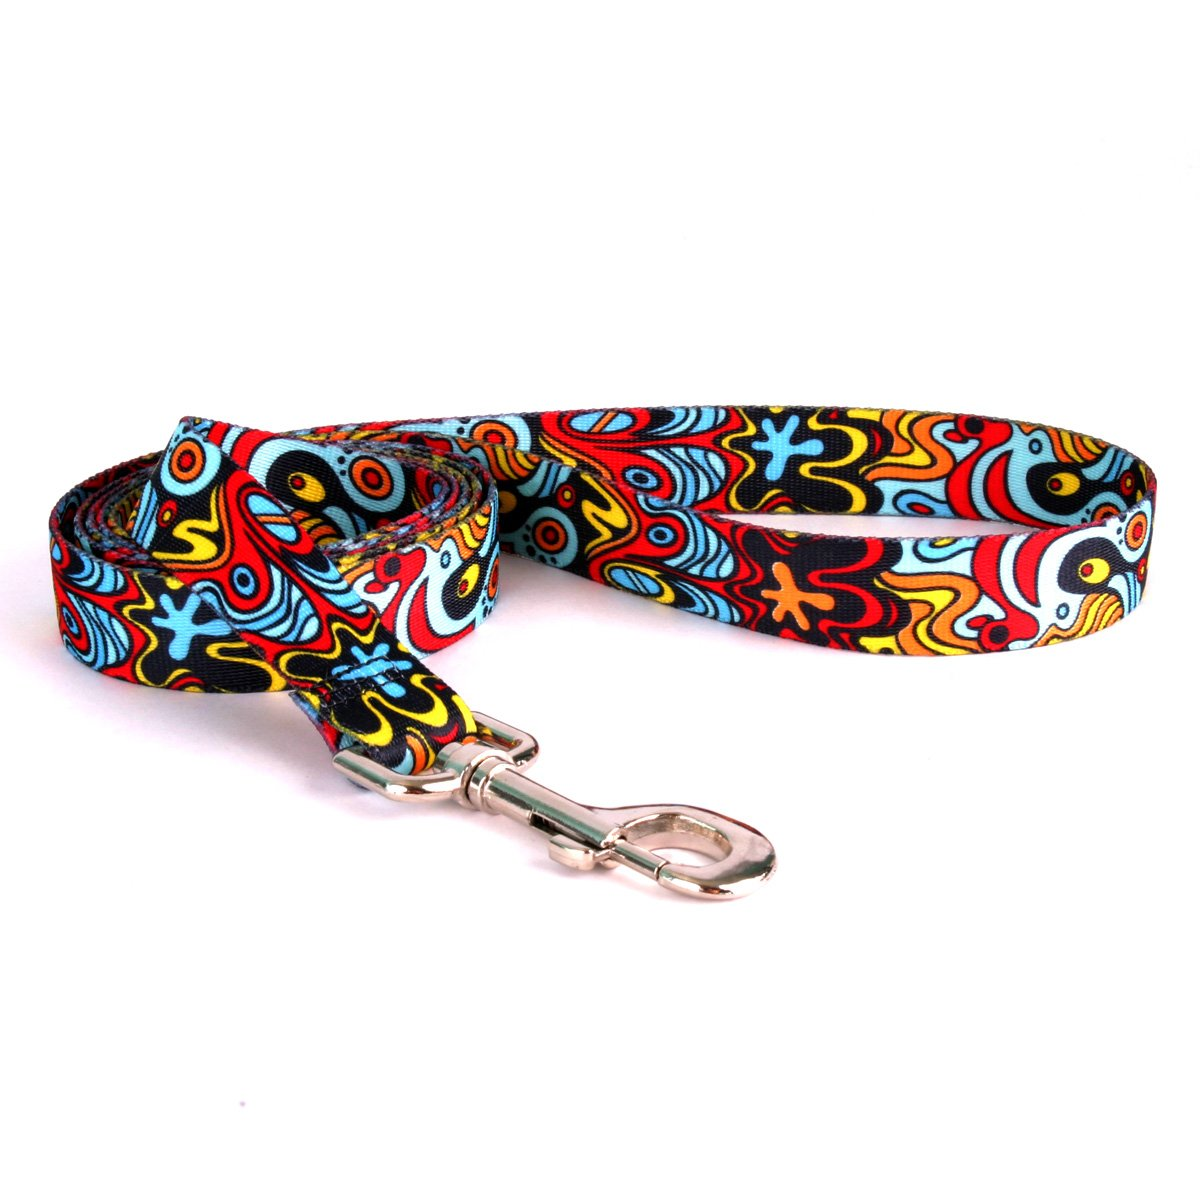 Yellow Dog Design Abstract Dog Leash 3/8'' Wide and 5' (60'') Long, X-Large